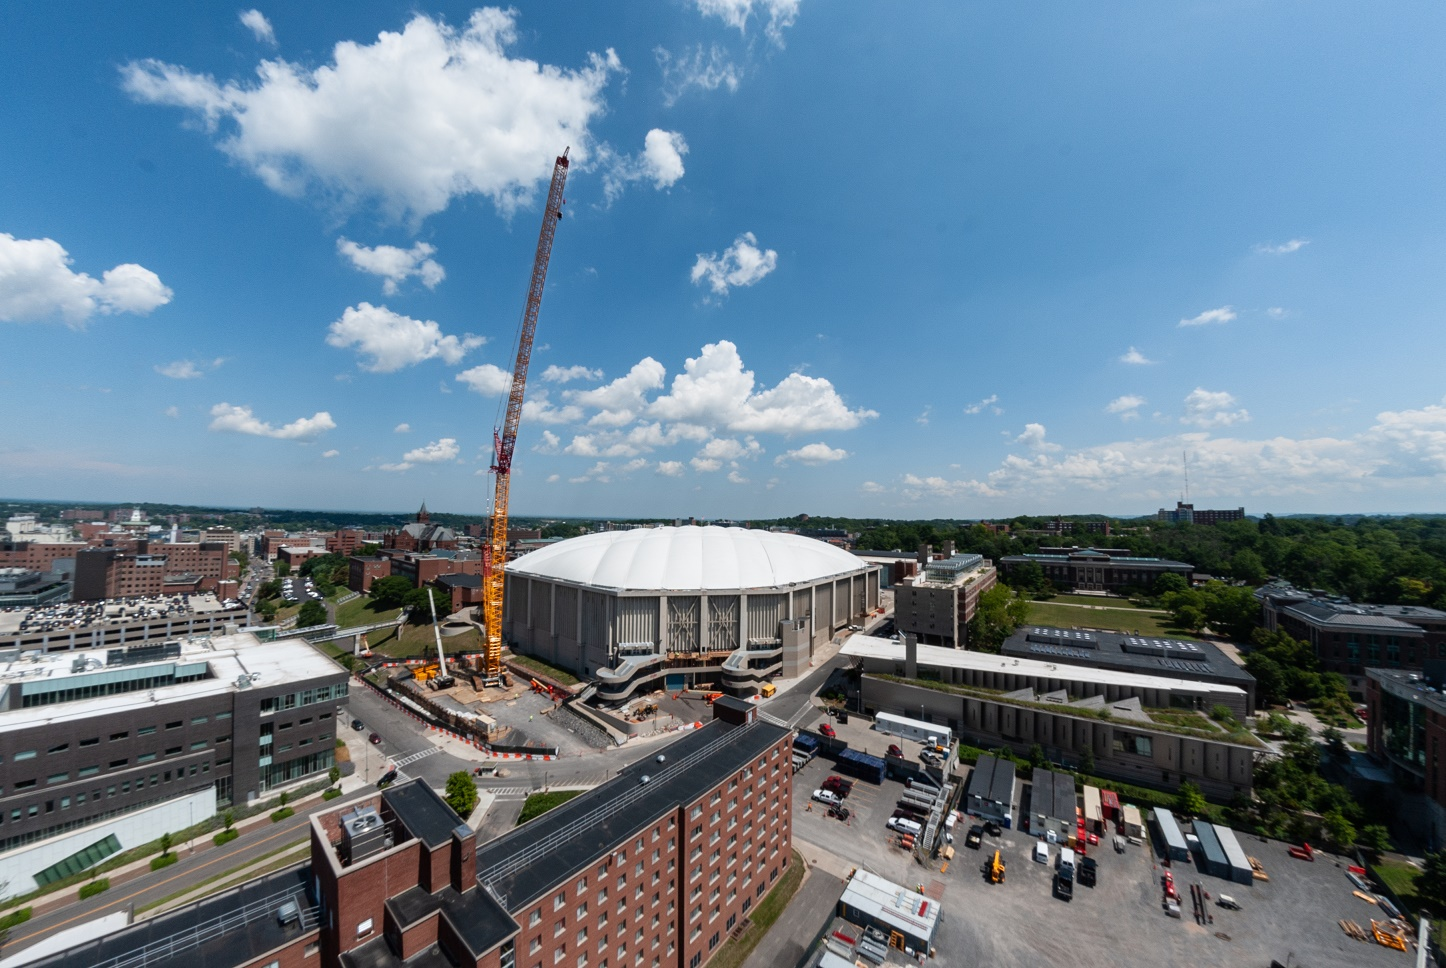 large crane working over stadium